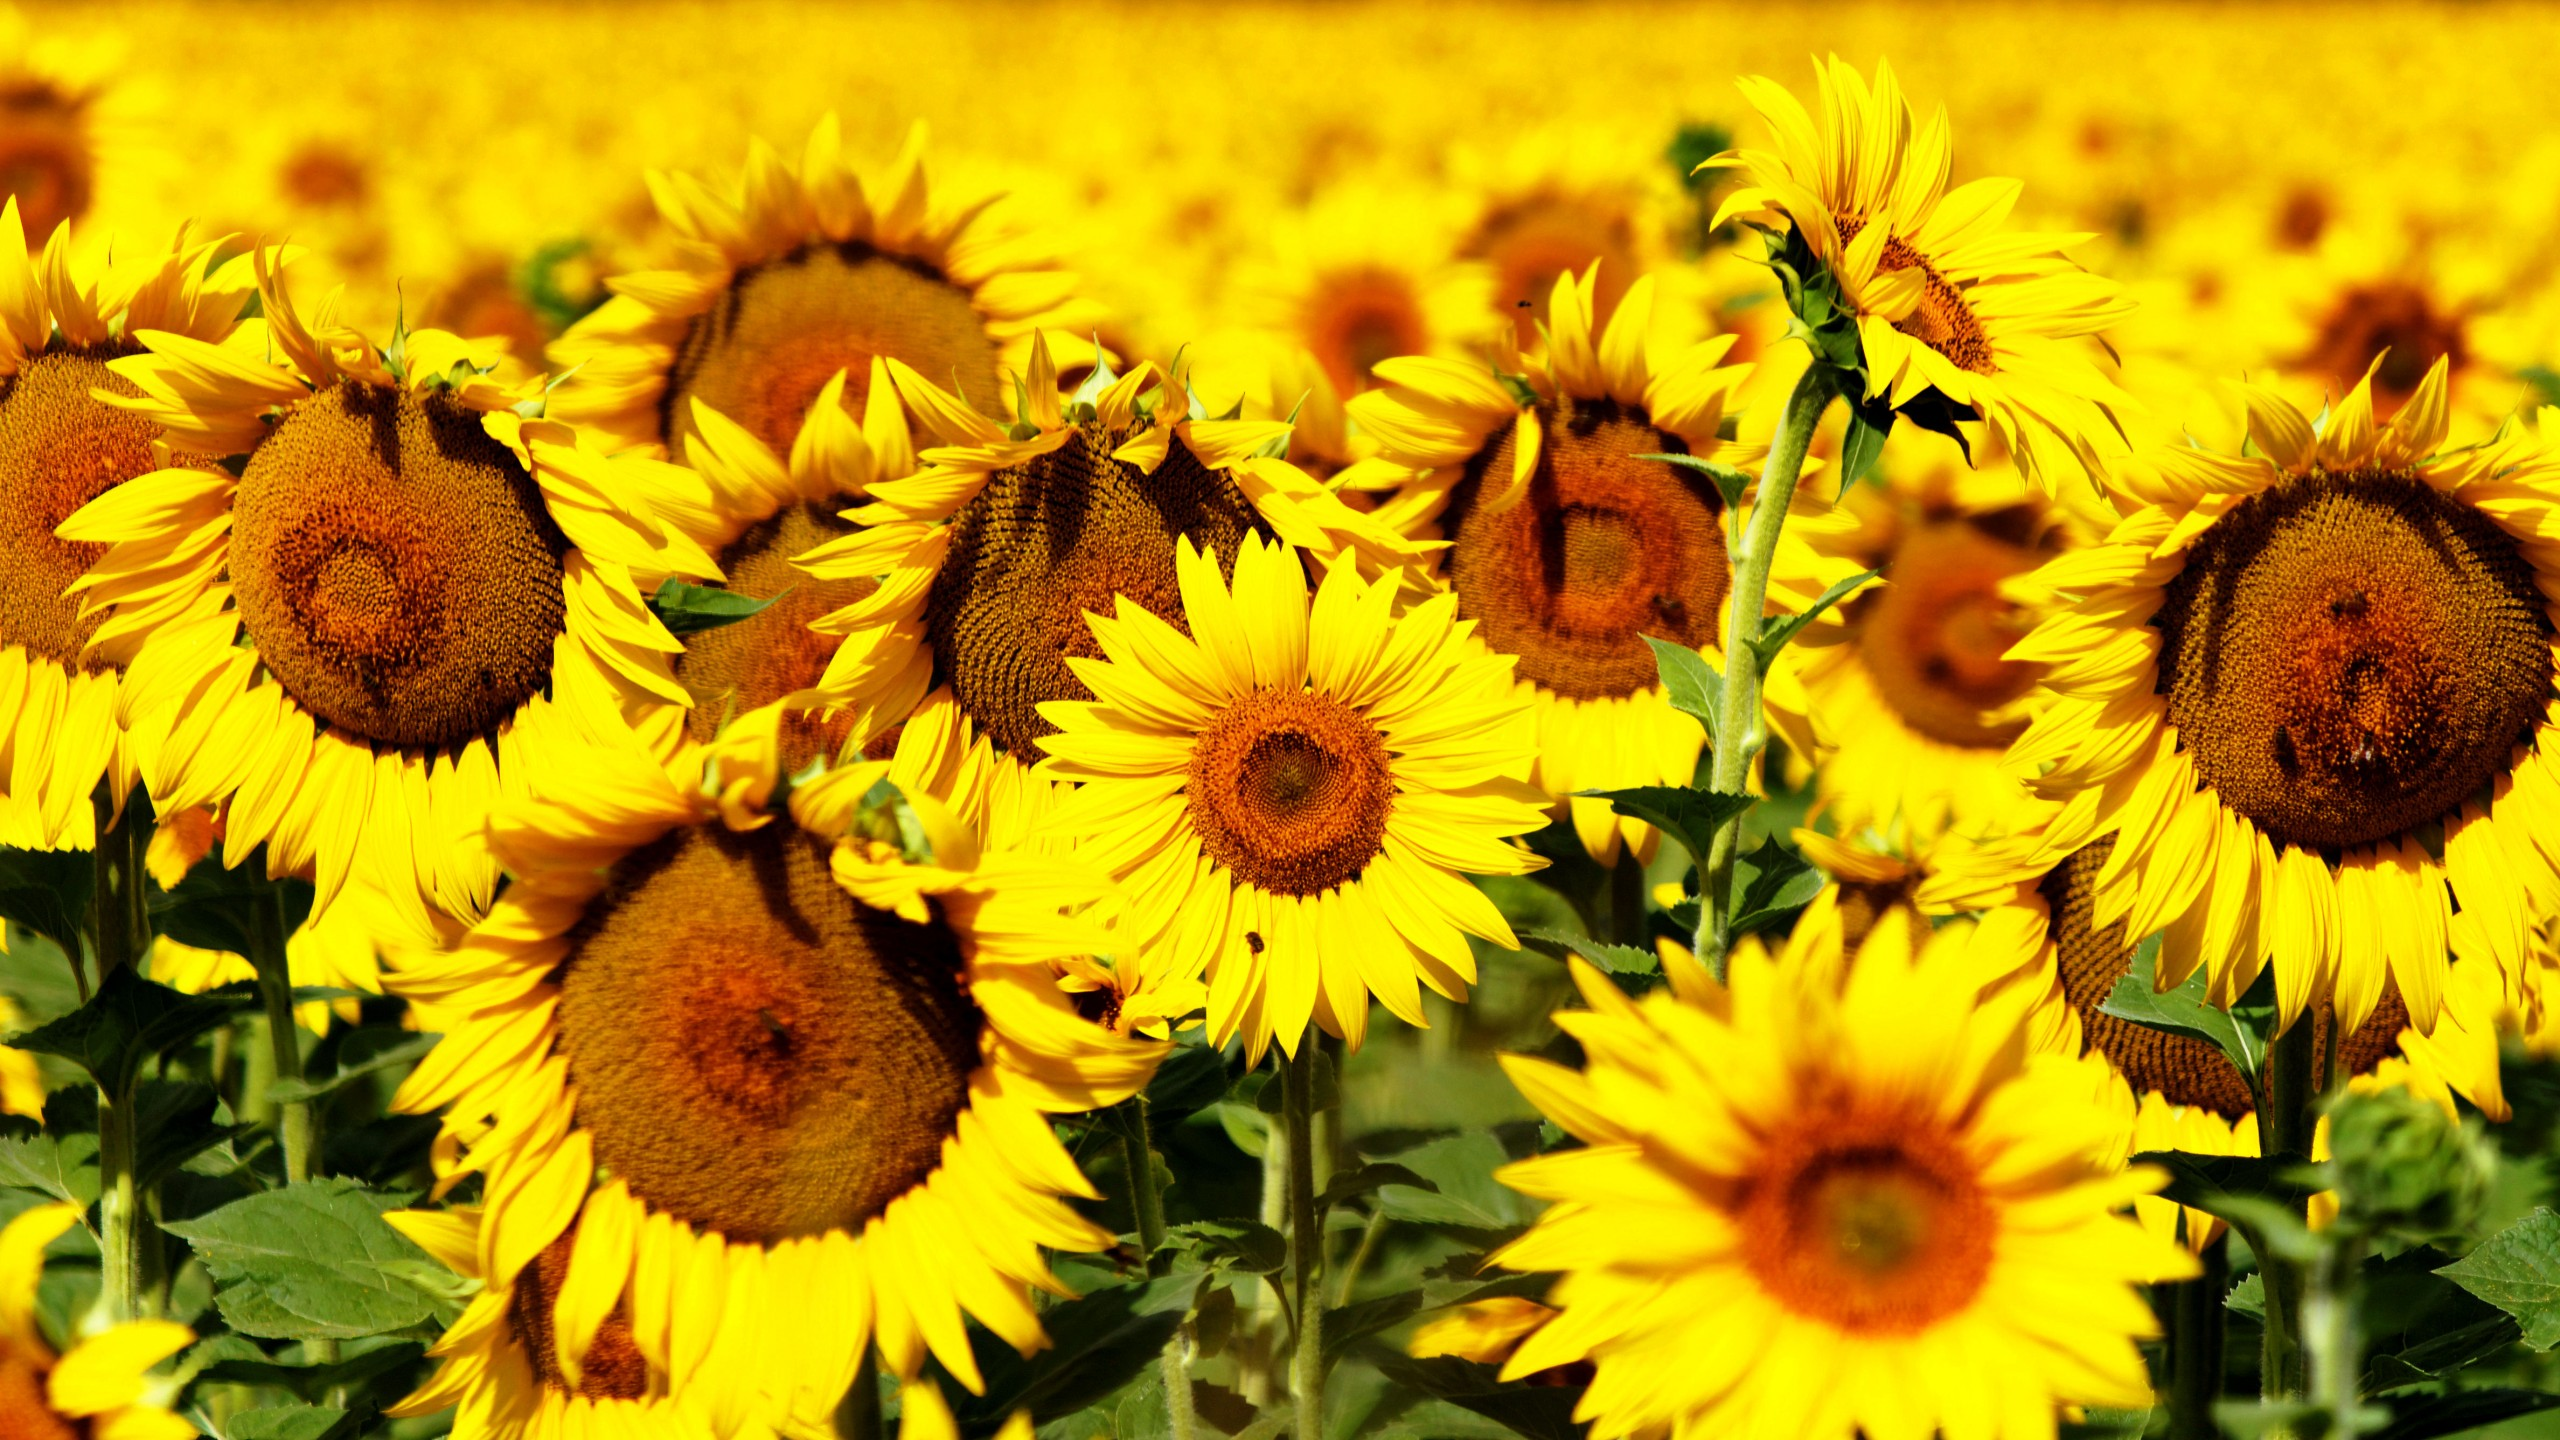 wallpaper sunflowers, 5k, 4k wallpaper, 8k, flowers, field, yellow